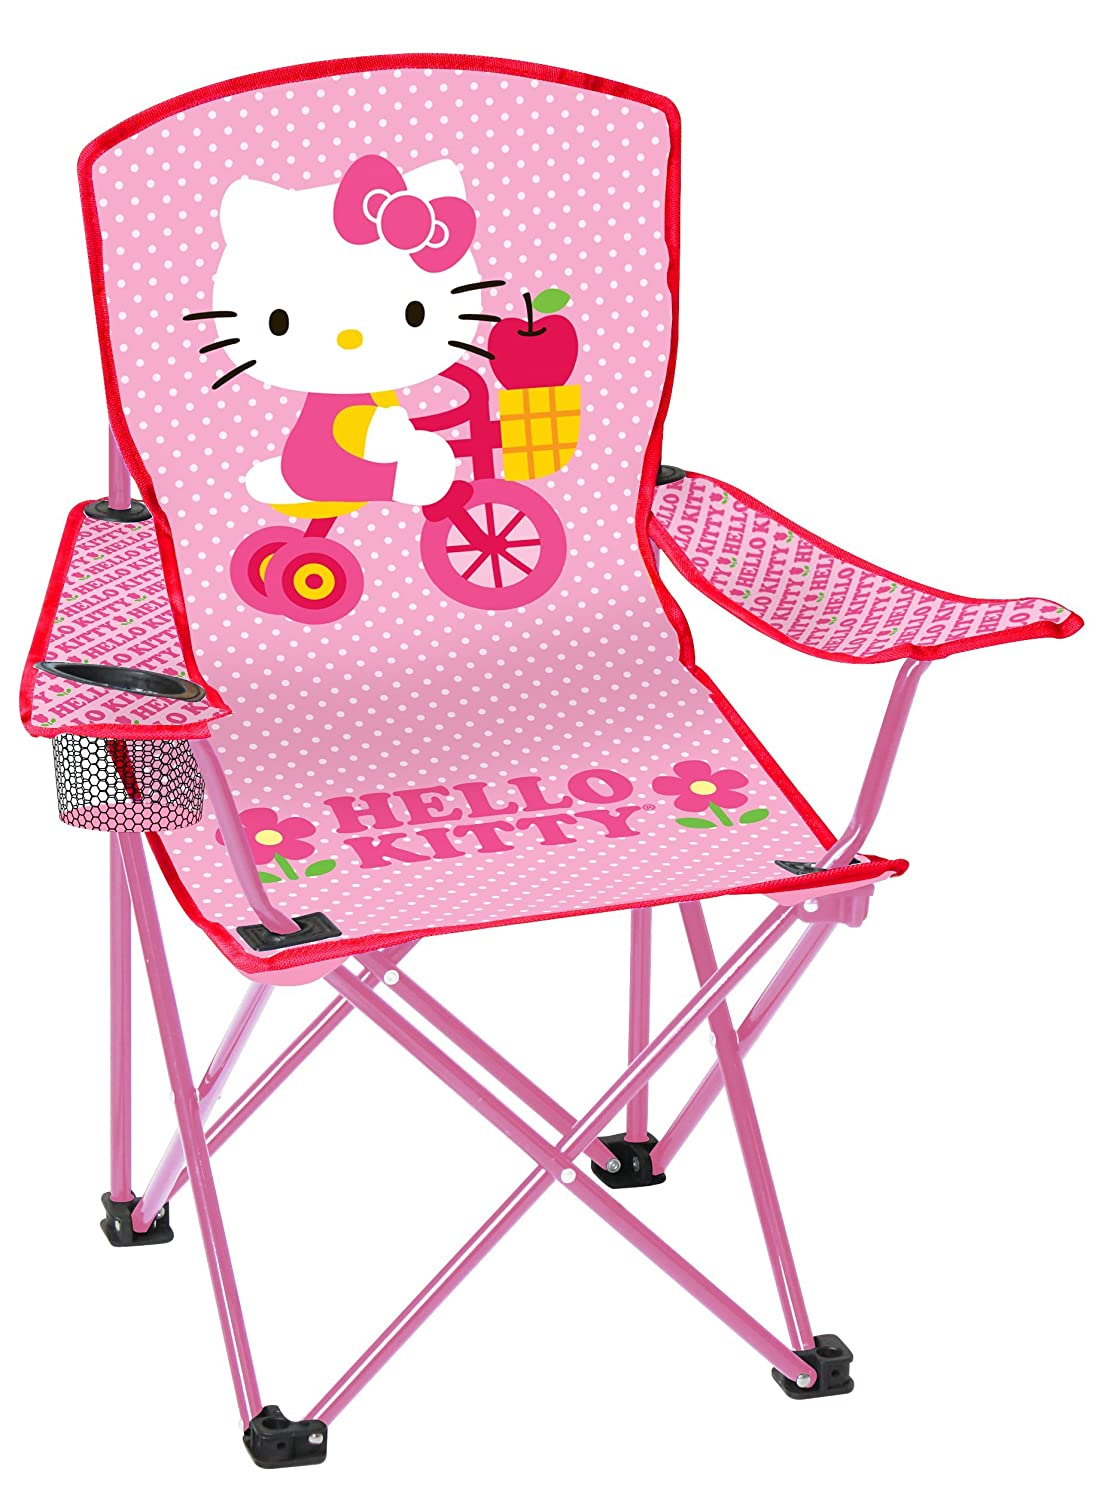 Amazon.com: Hello Kitty - Silla plegable para jóvenes con ...